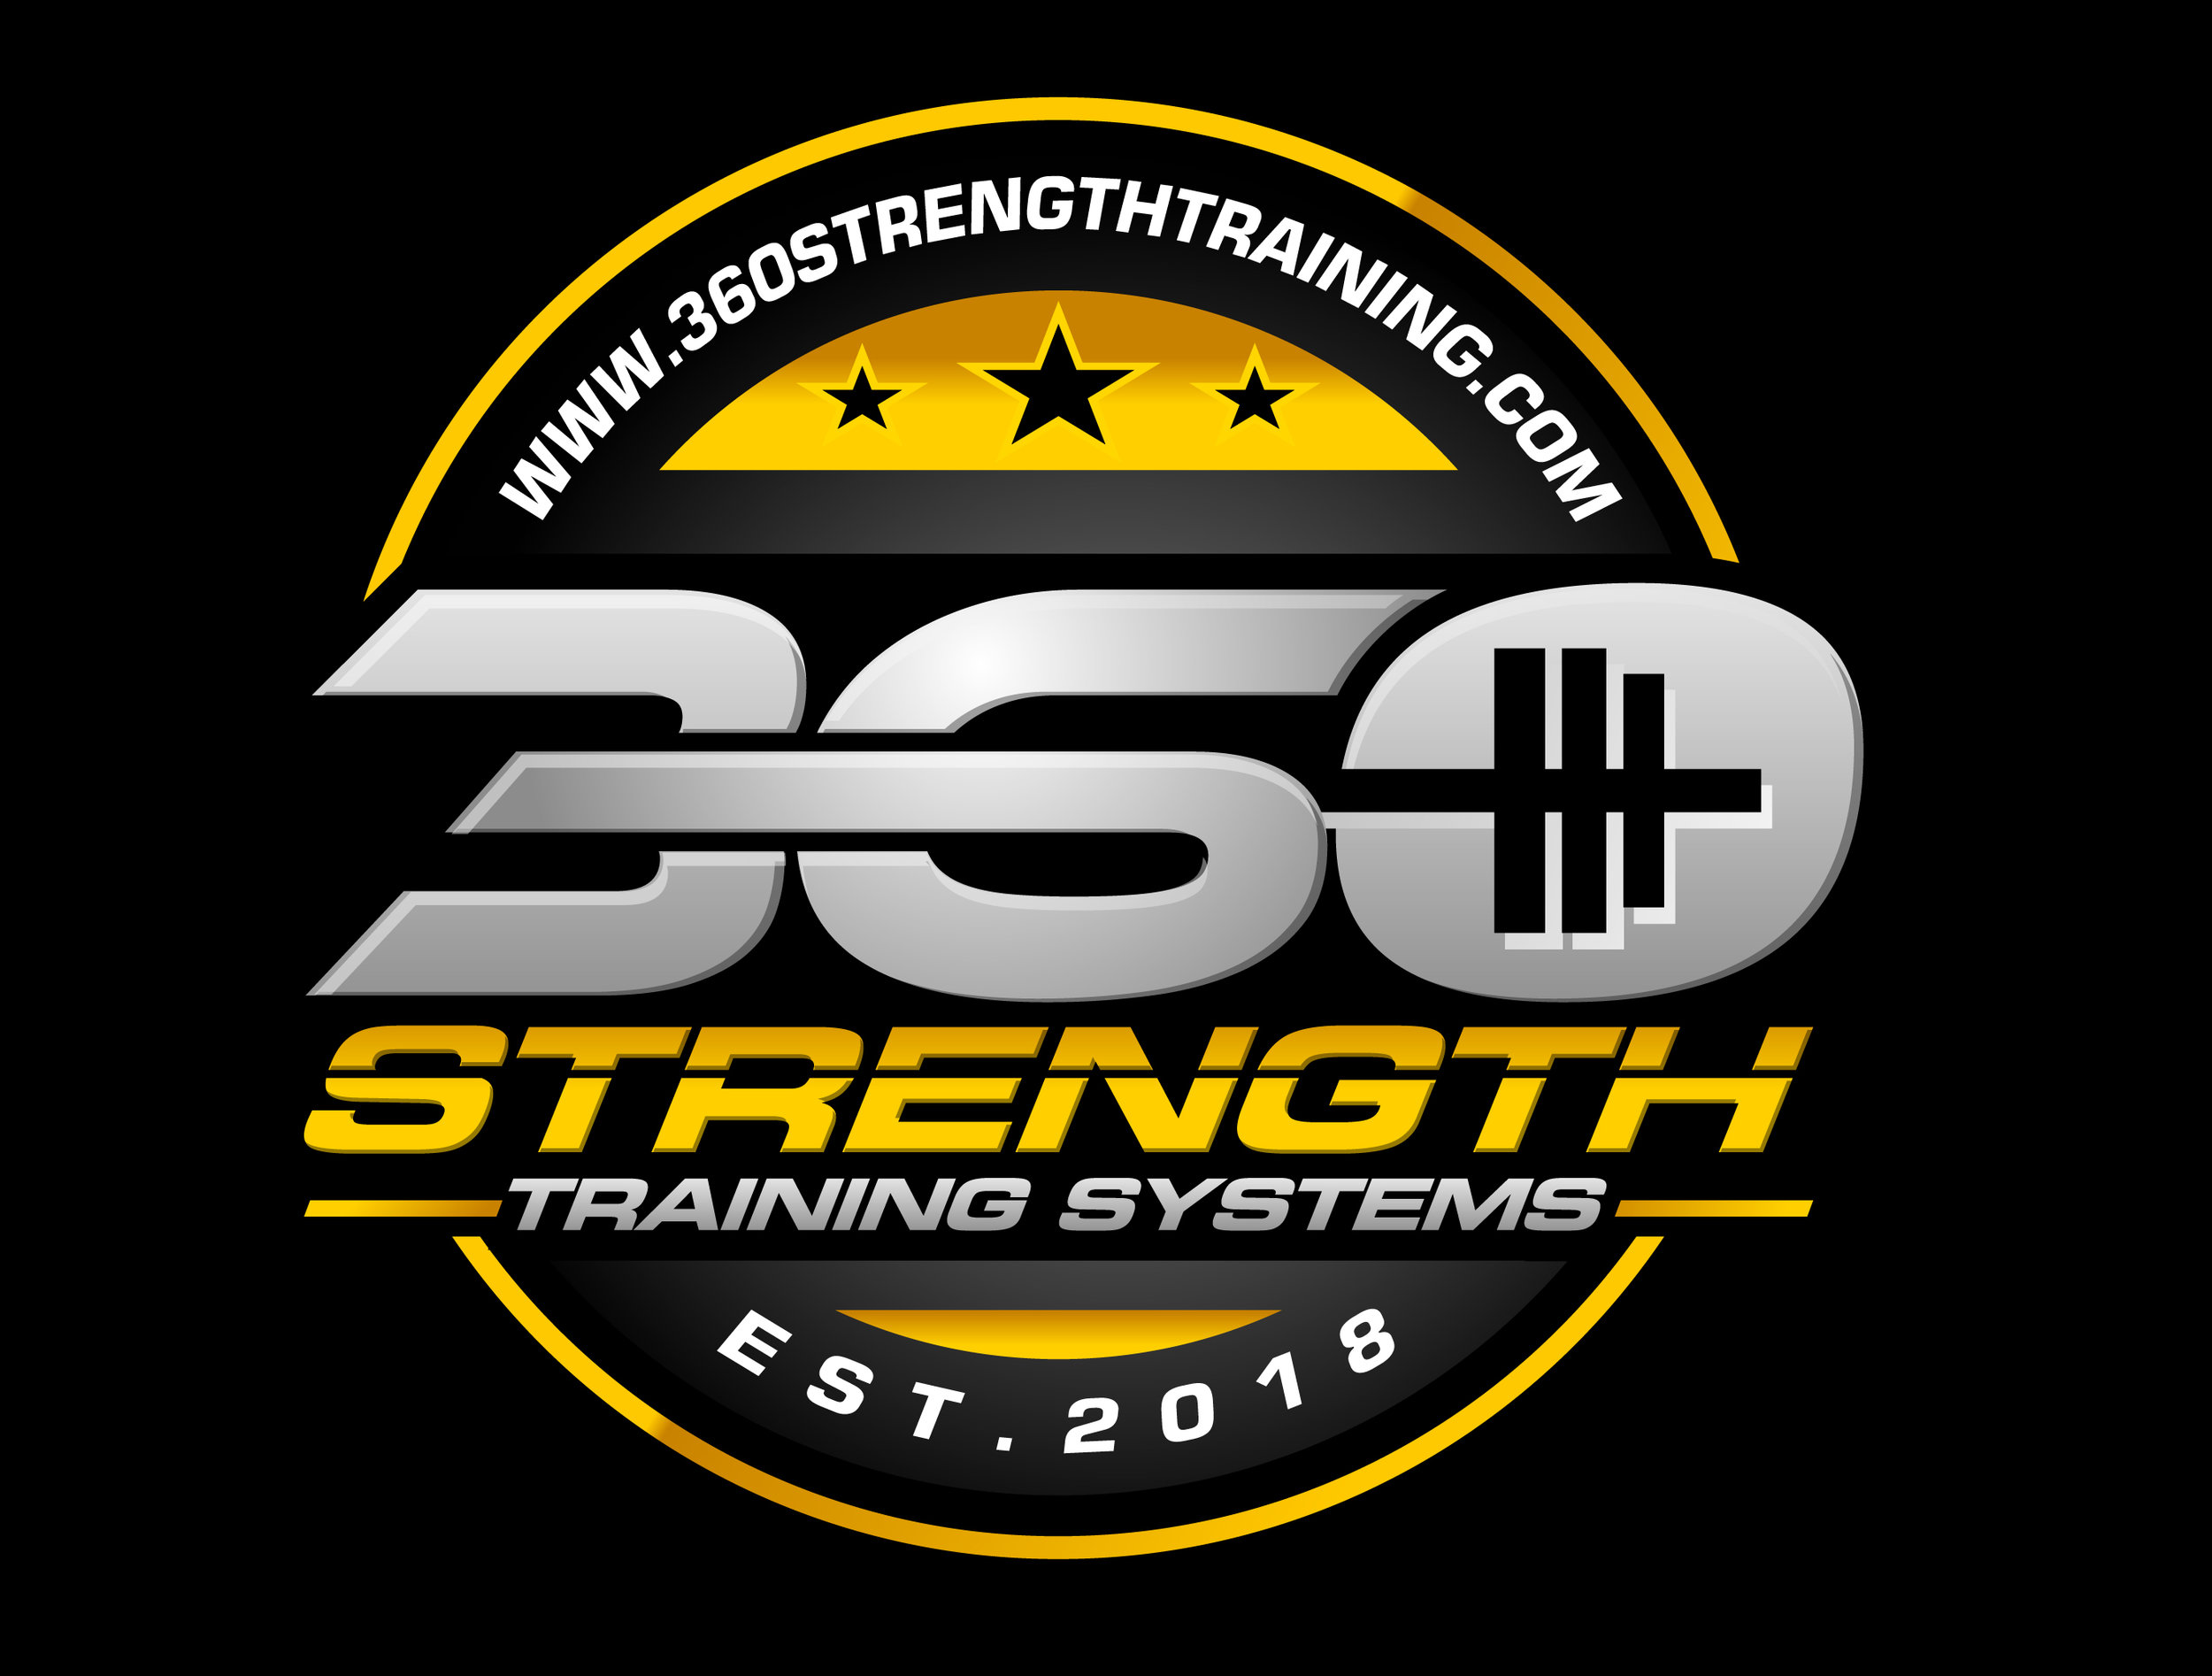 Sled Training with the 360 Strength Trainer -